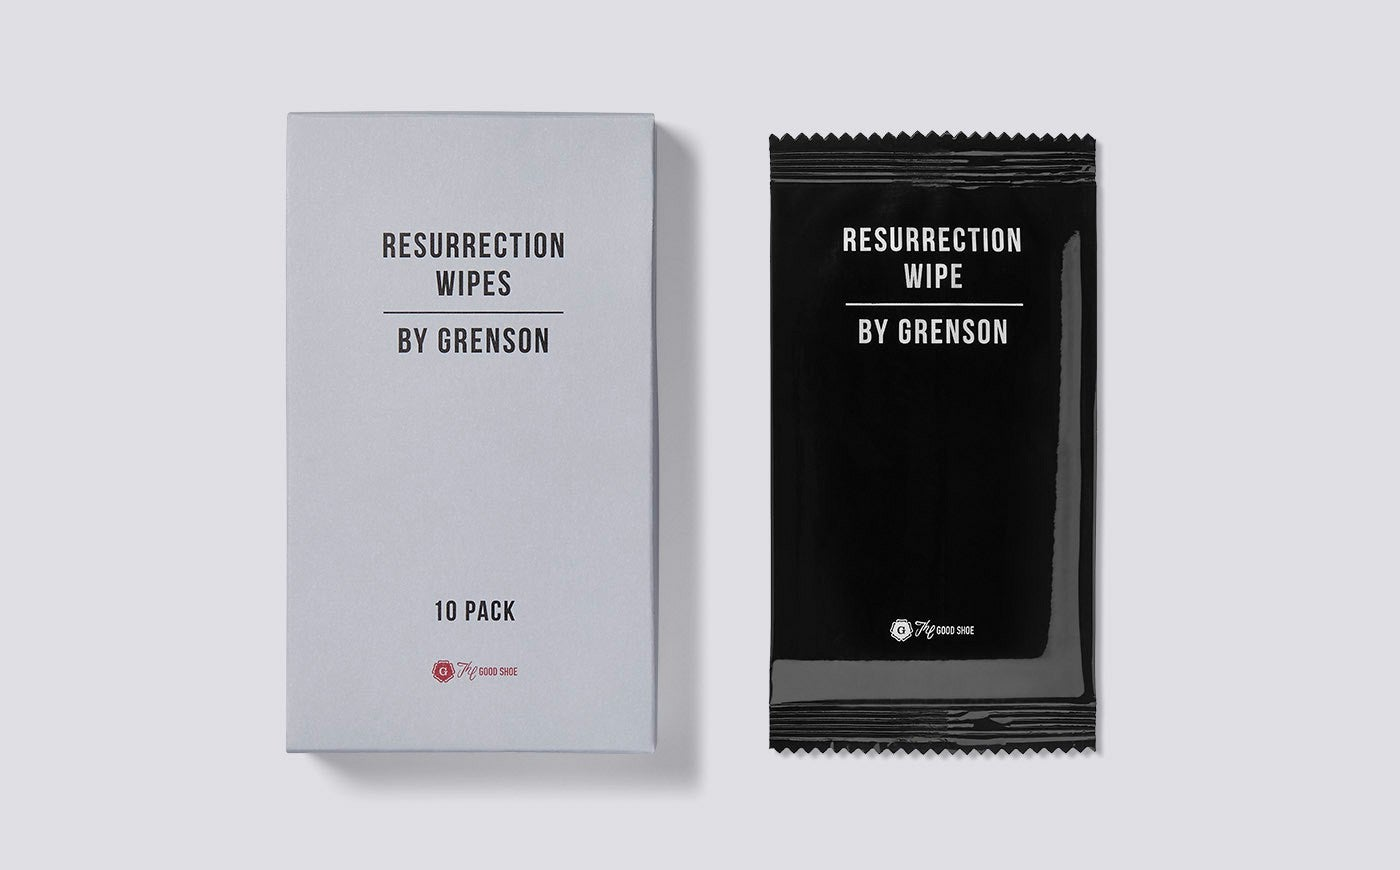 Limpeza Grenson Ressurection Wipes